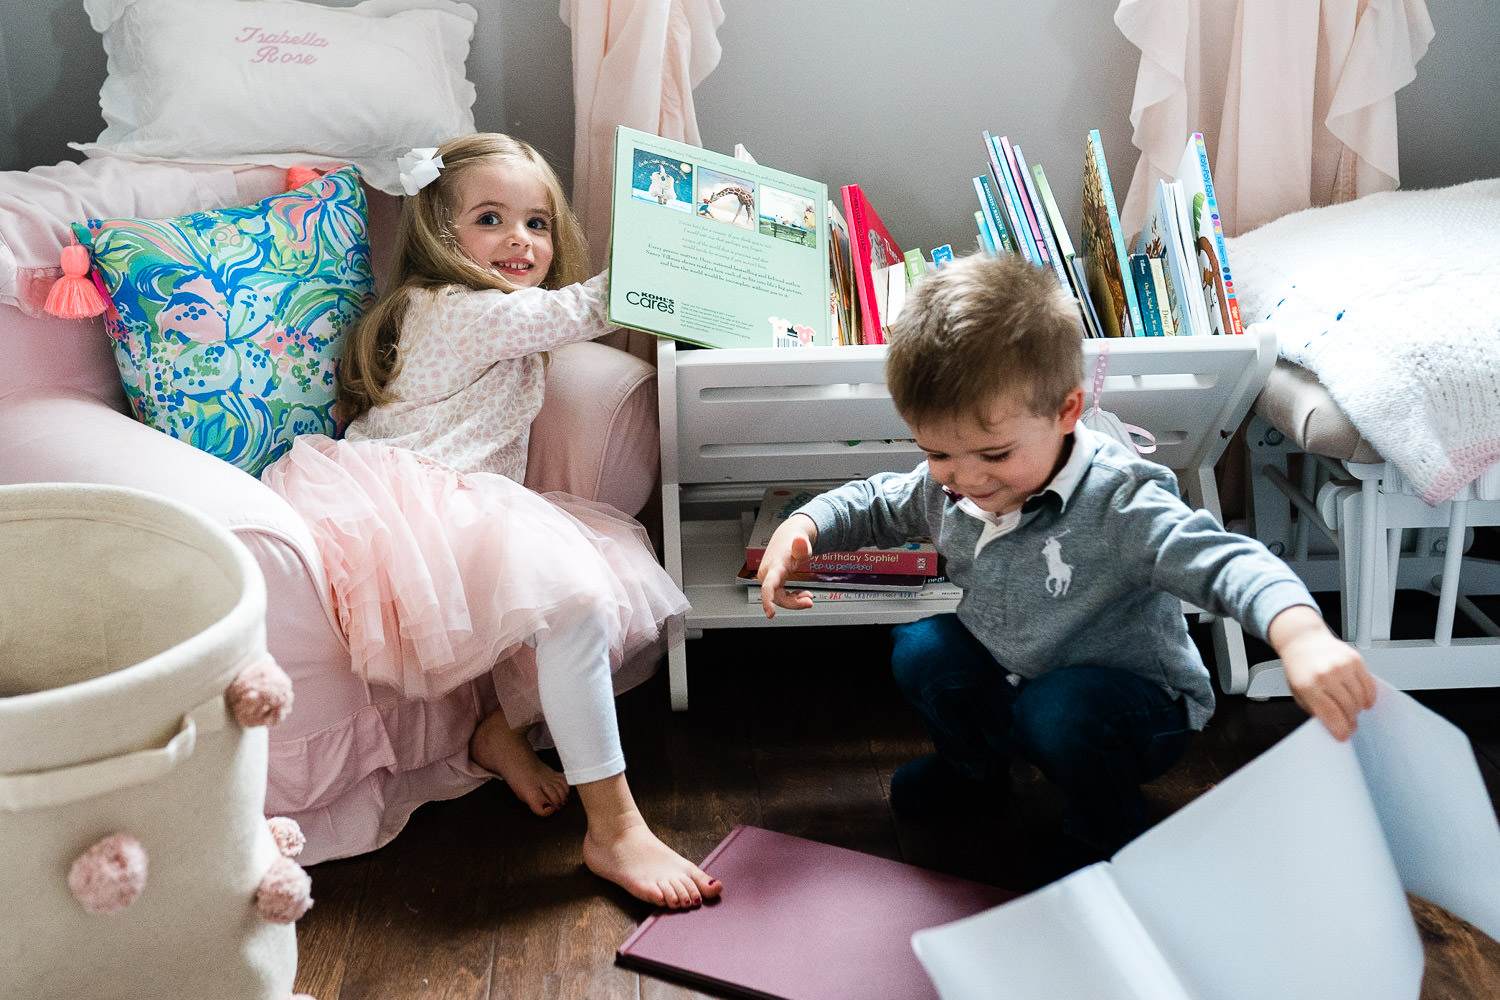 Two children play in their bedroom.